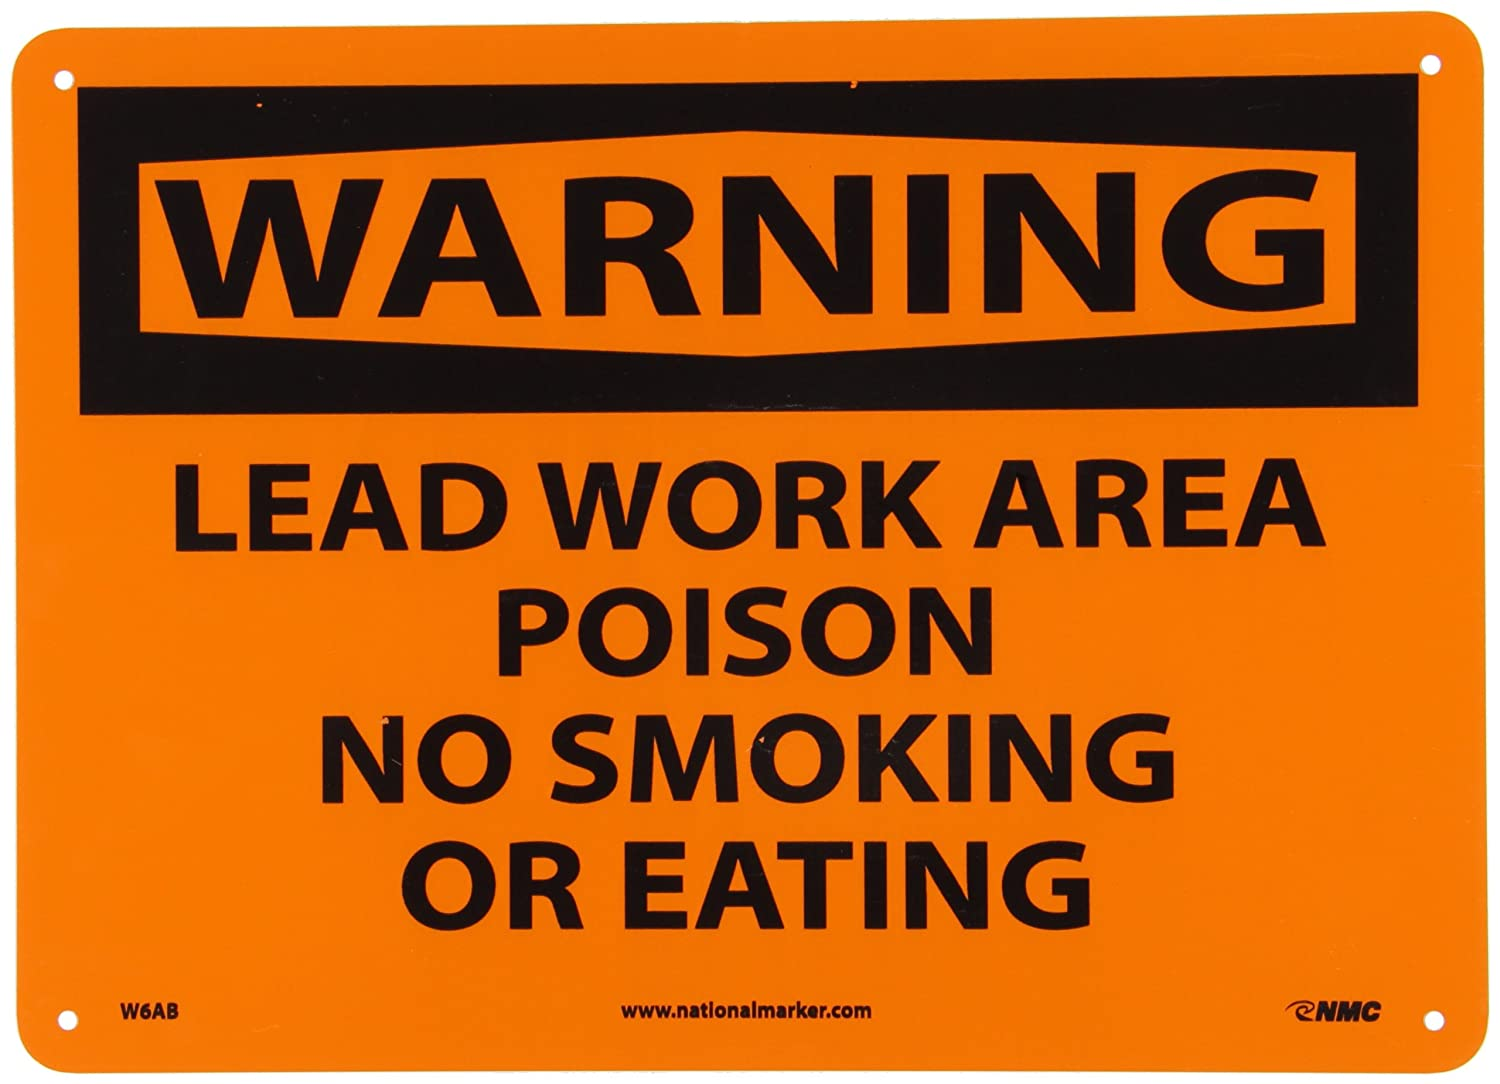 NMC W6AB OSHA Sign, Legend WARNING - LEAD WORK AREA POISON NO SMOKING OR EATING, 14 Length x 10 Height, Aluminum, Black on Orange nmc w6ab osha sign legend warning lead work area poison no smoking or eating 14 length x 10 height aluminum black on orange